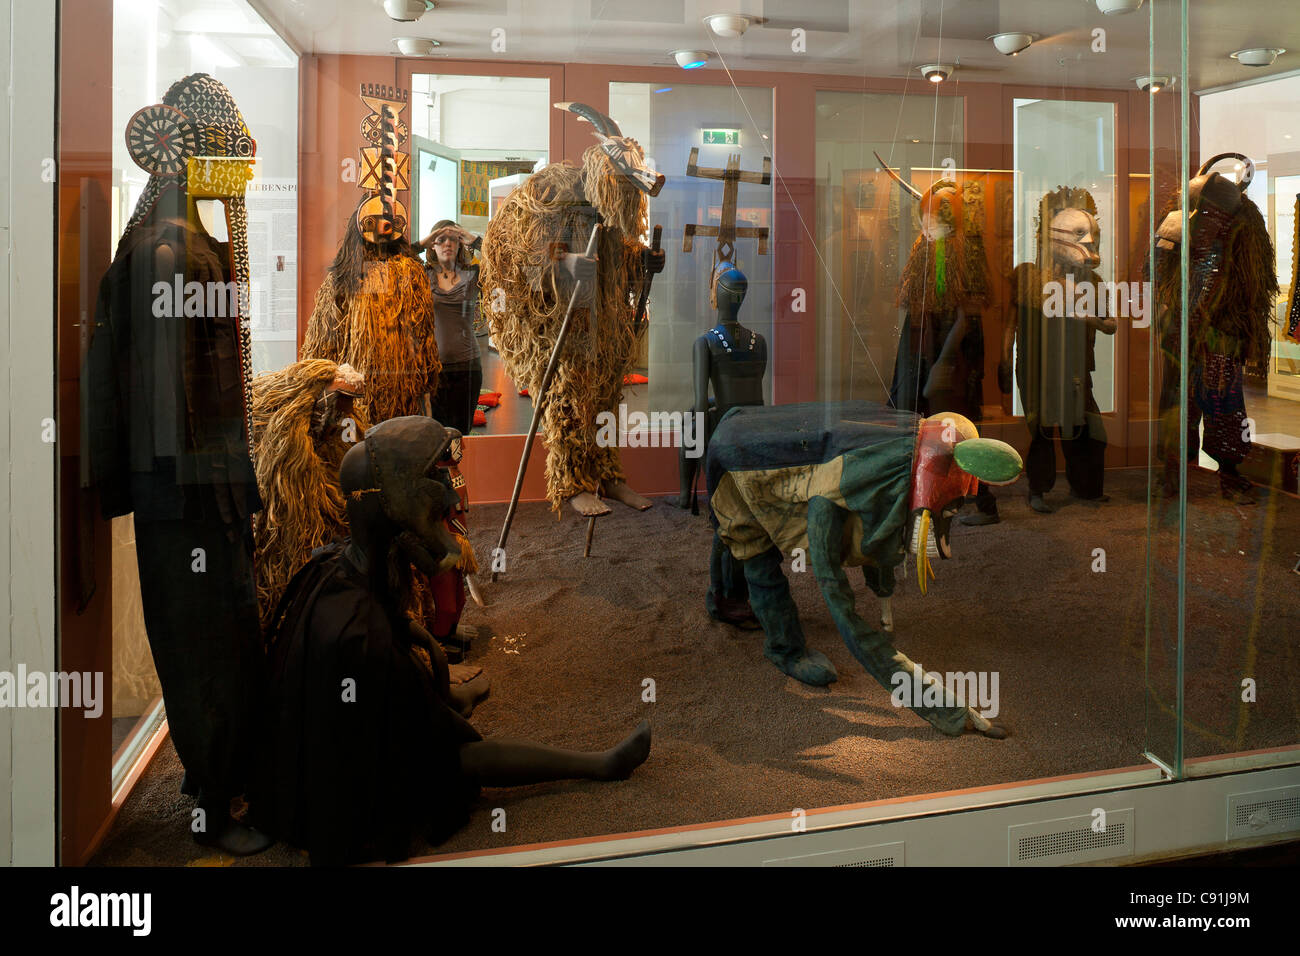 Museum of Ethnology Hamburg, Africa exhibition, Hanseatic city of Hamburg, Germany, Europe - Stock Image